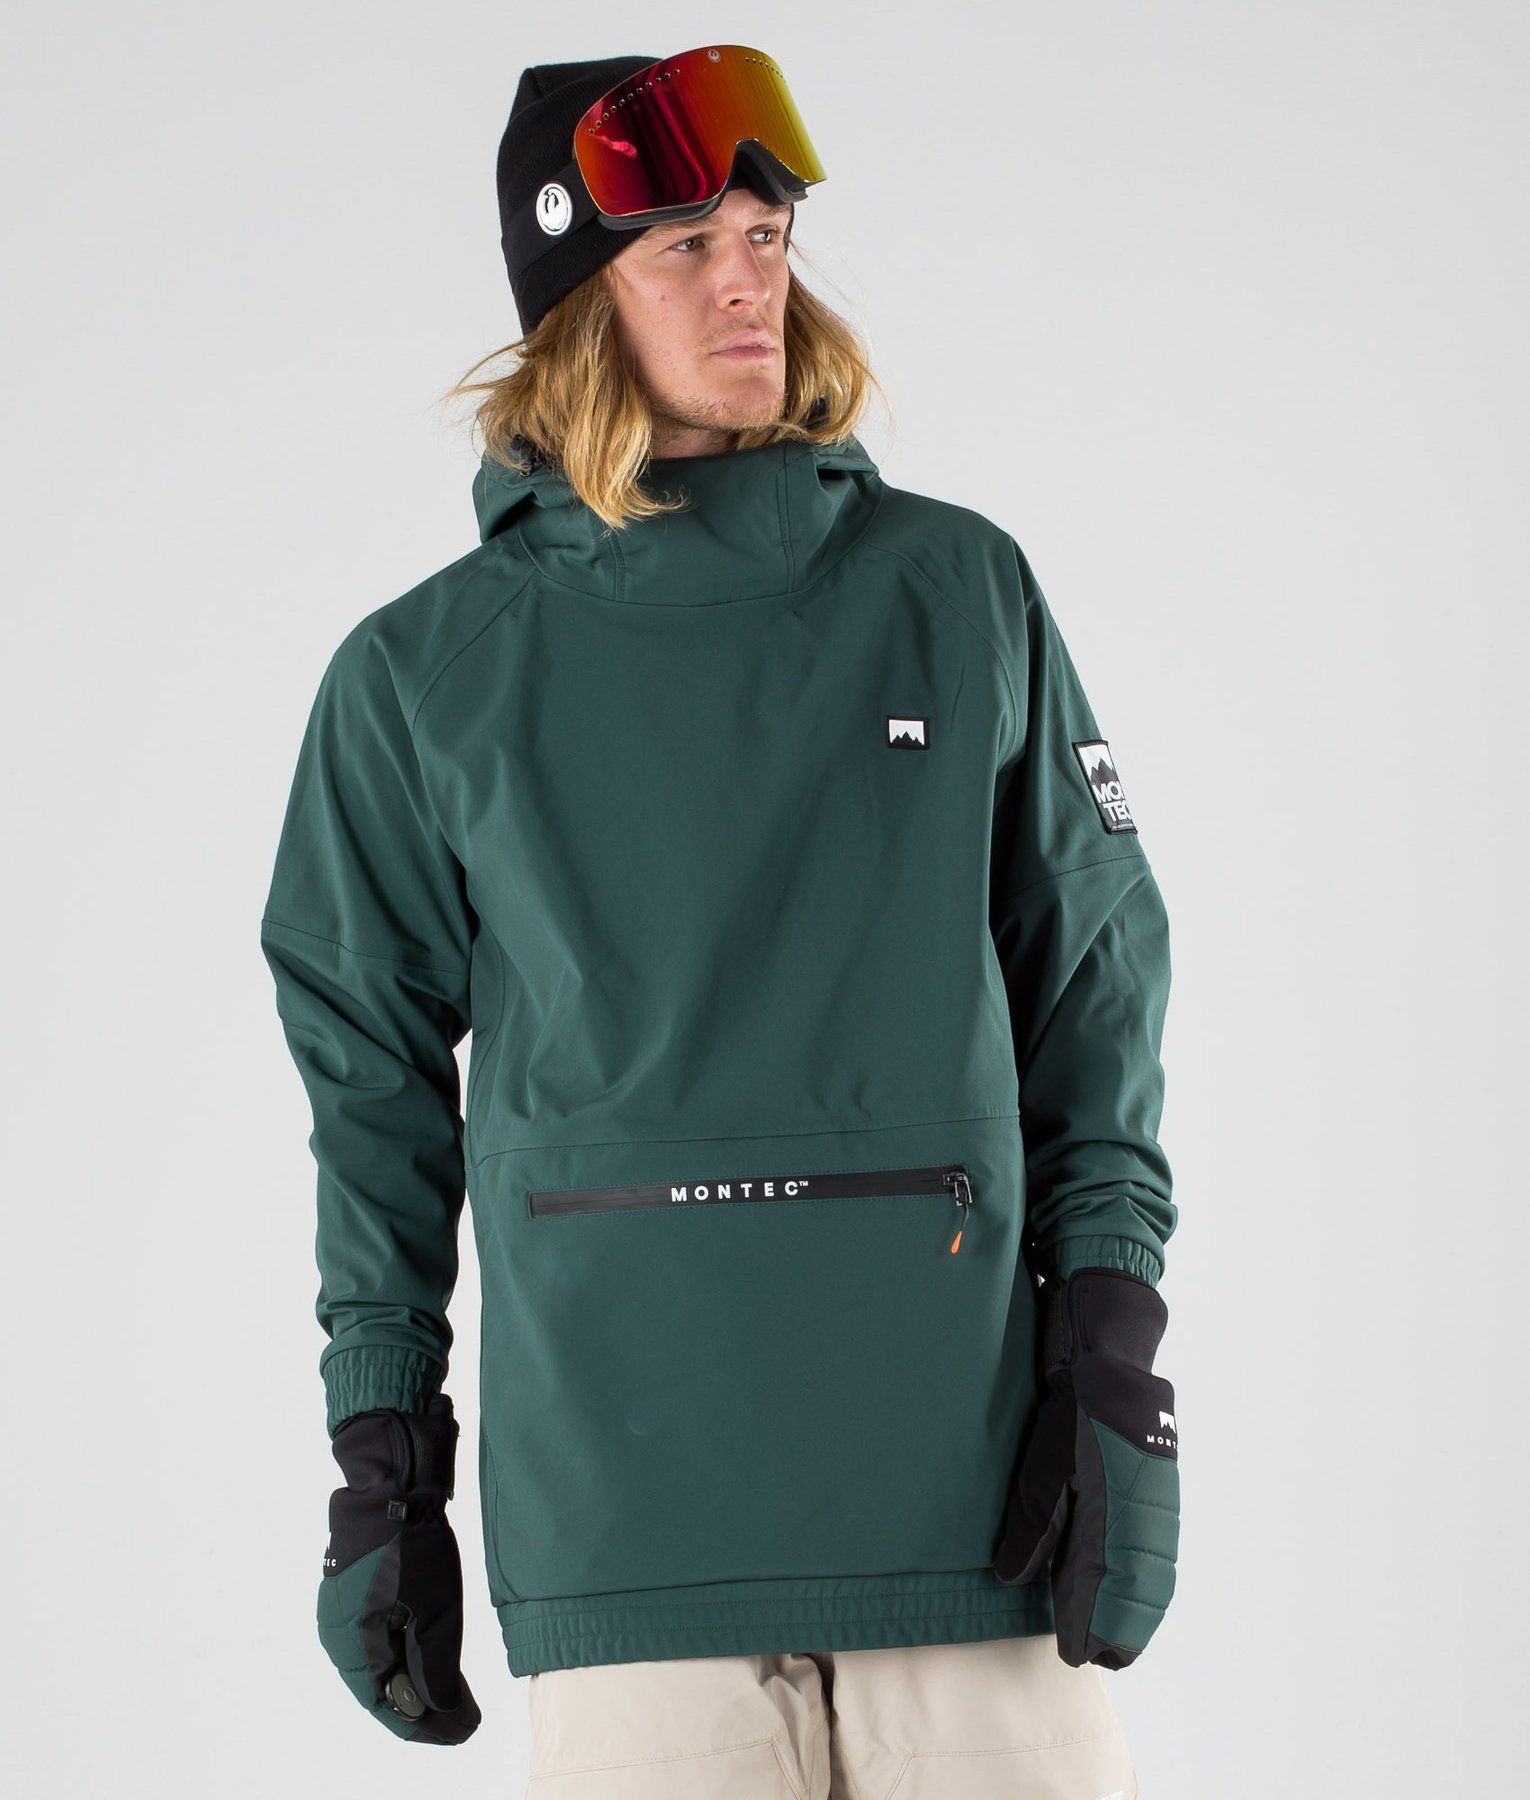 Tempest Ski Jacket Dark Atlantic | Jackets, Rain jacket, Skiing